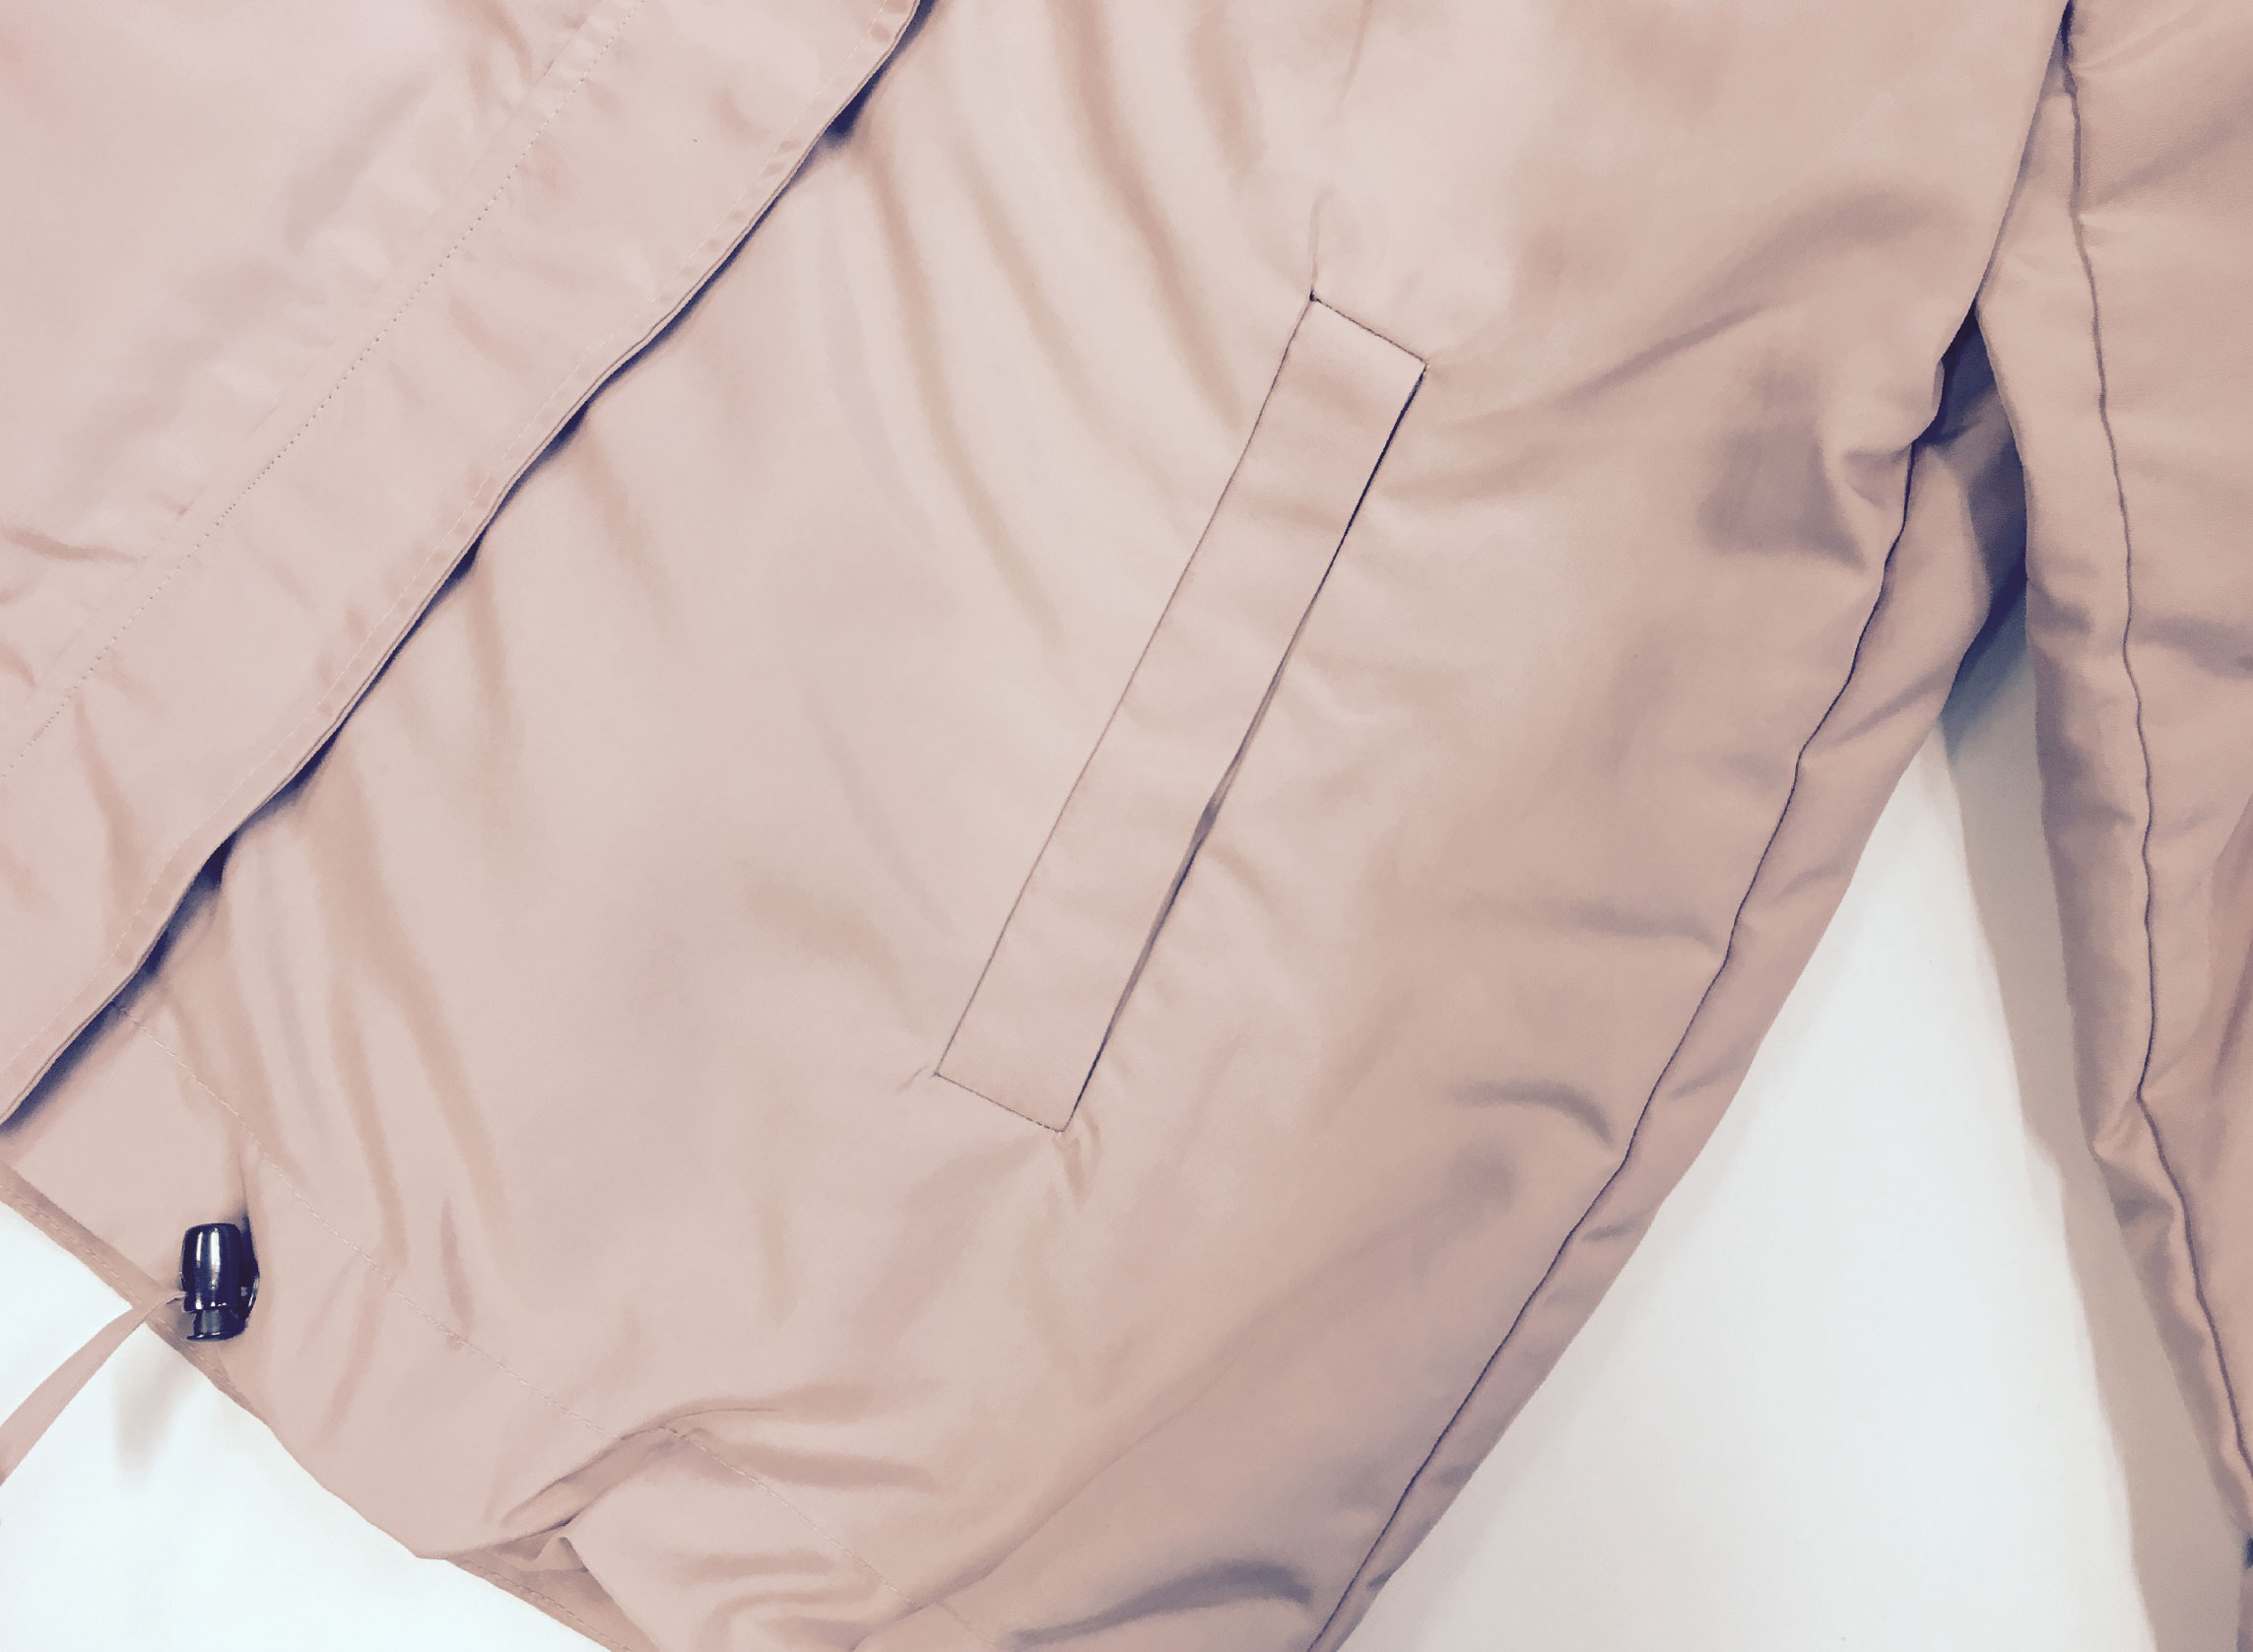 Pocketing: yes, it is what you think it is - a pocket!